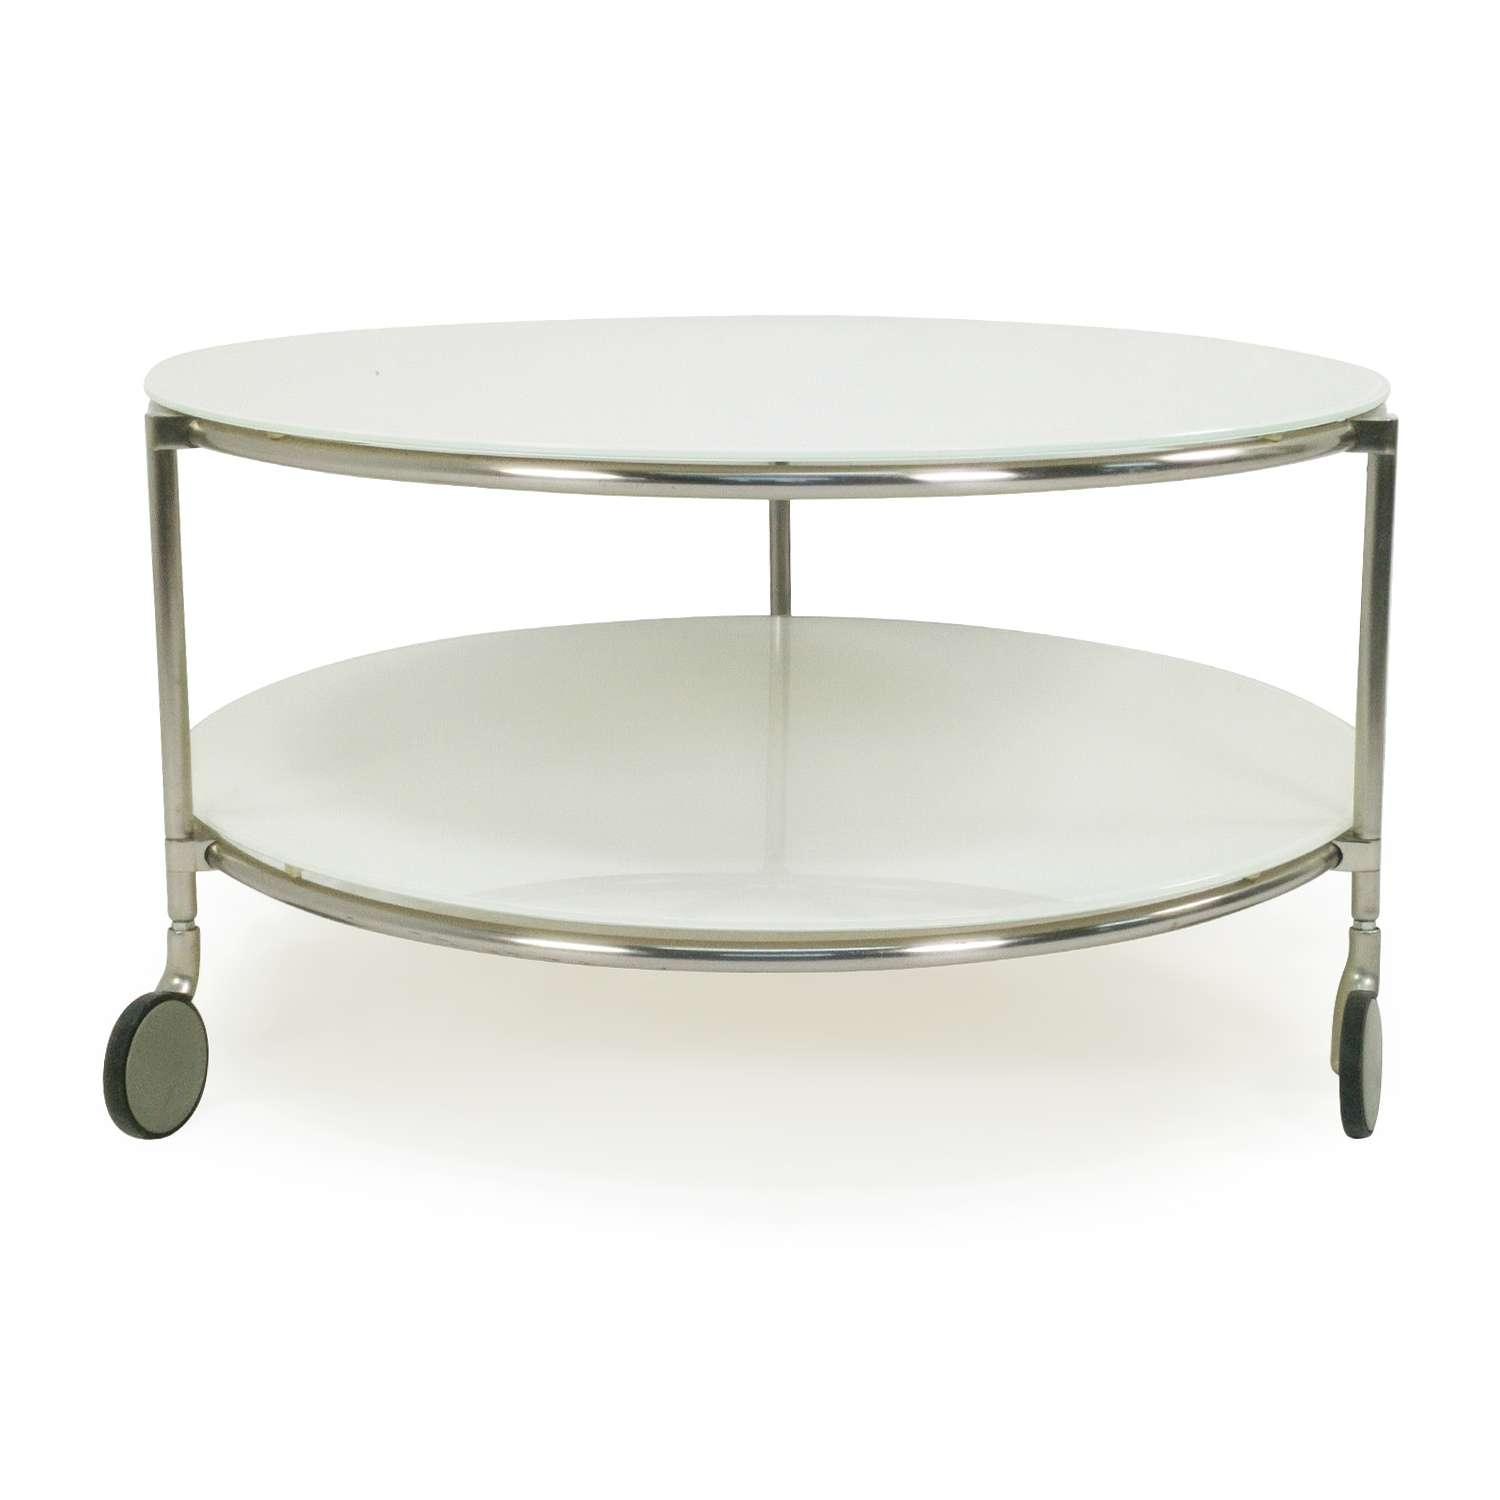 20 Best Collection of Glass Coffee Tables With Casters